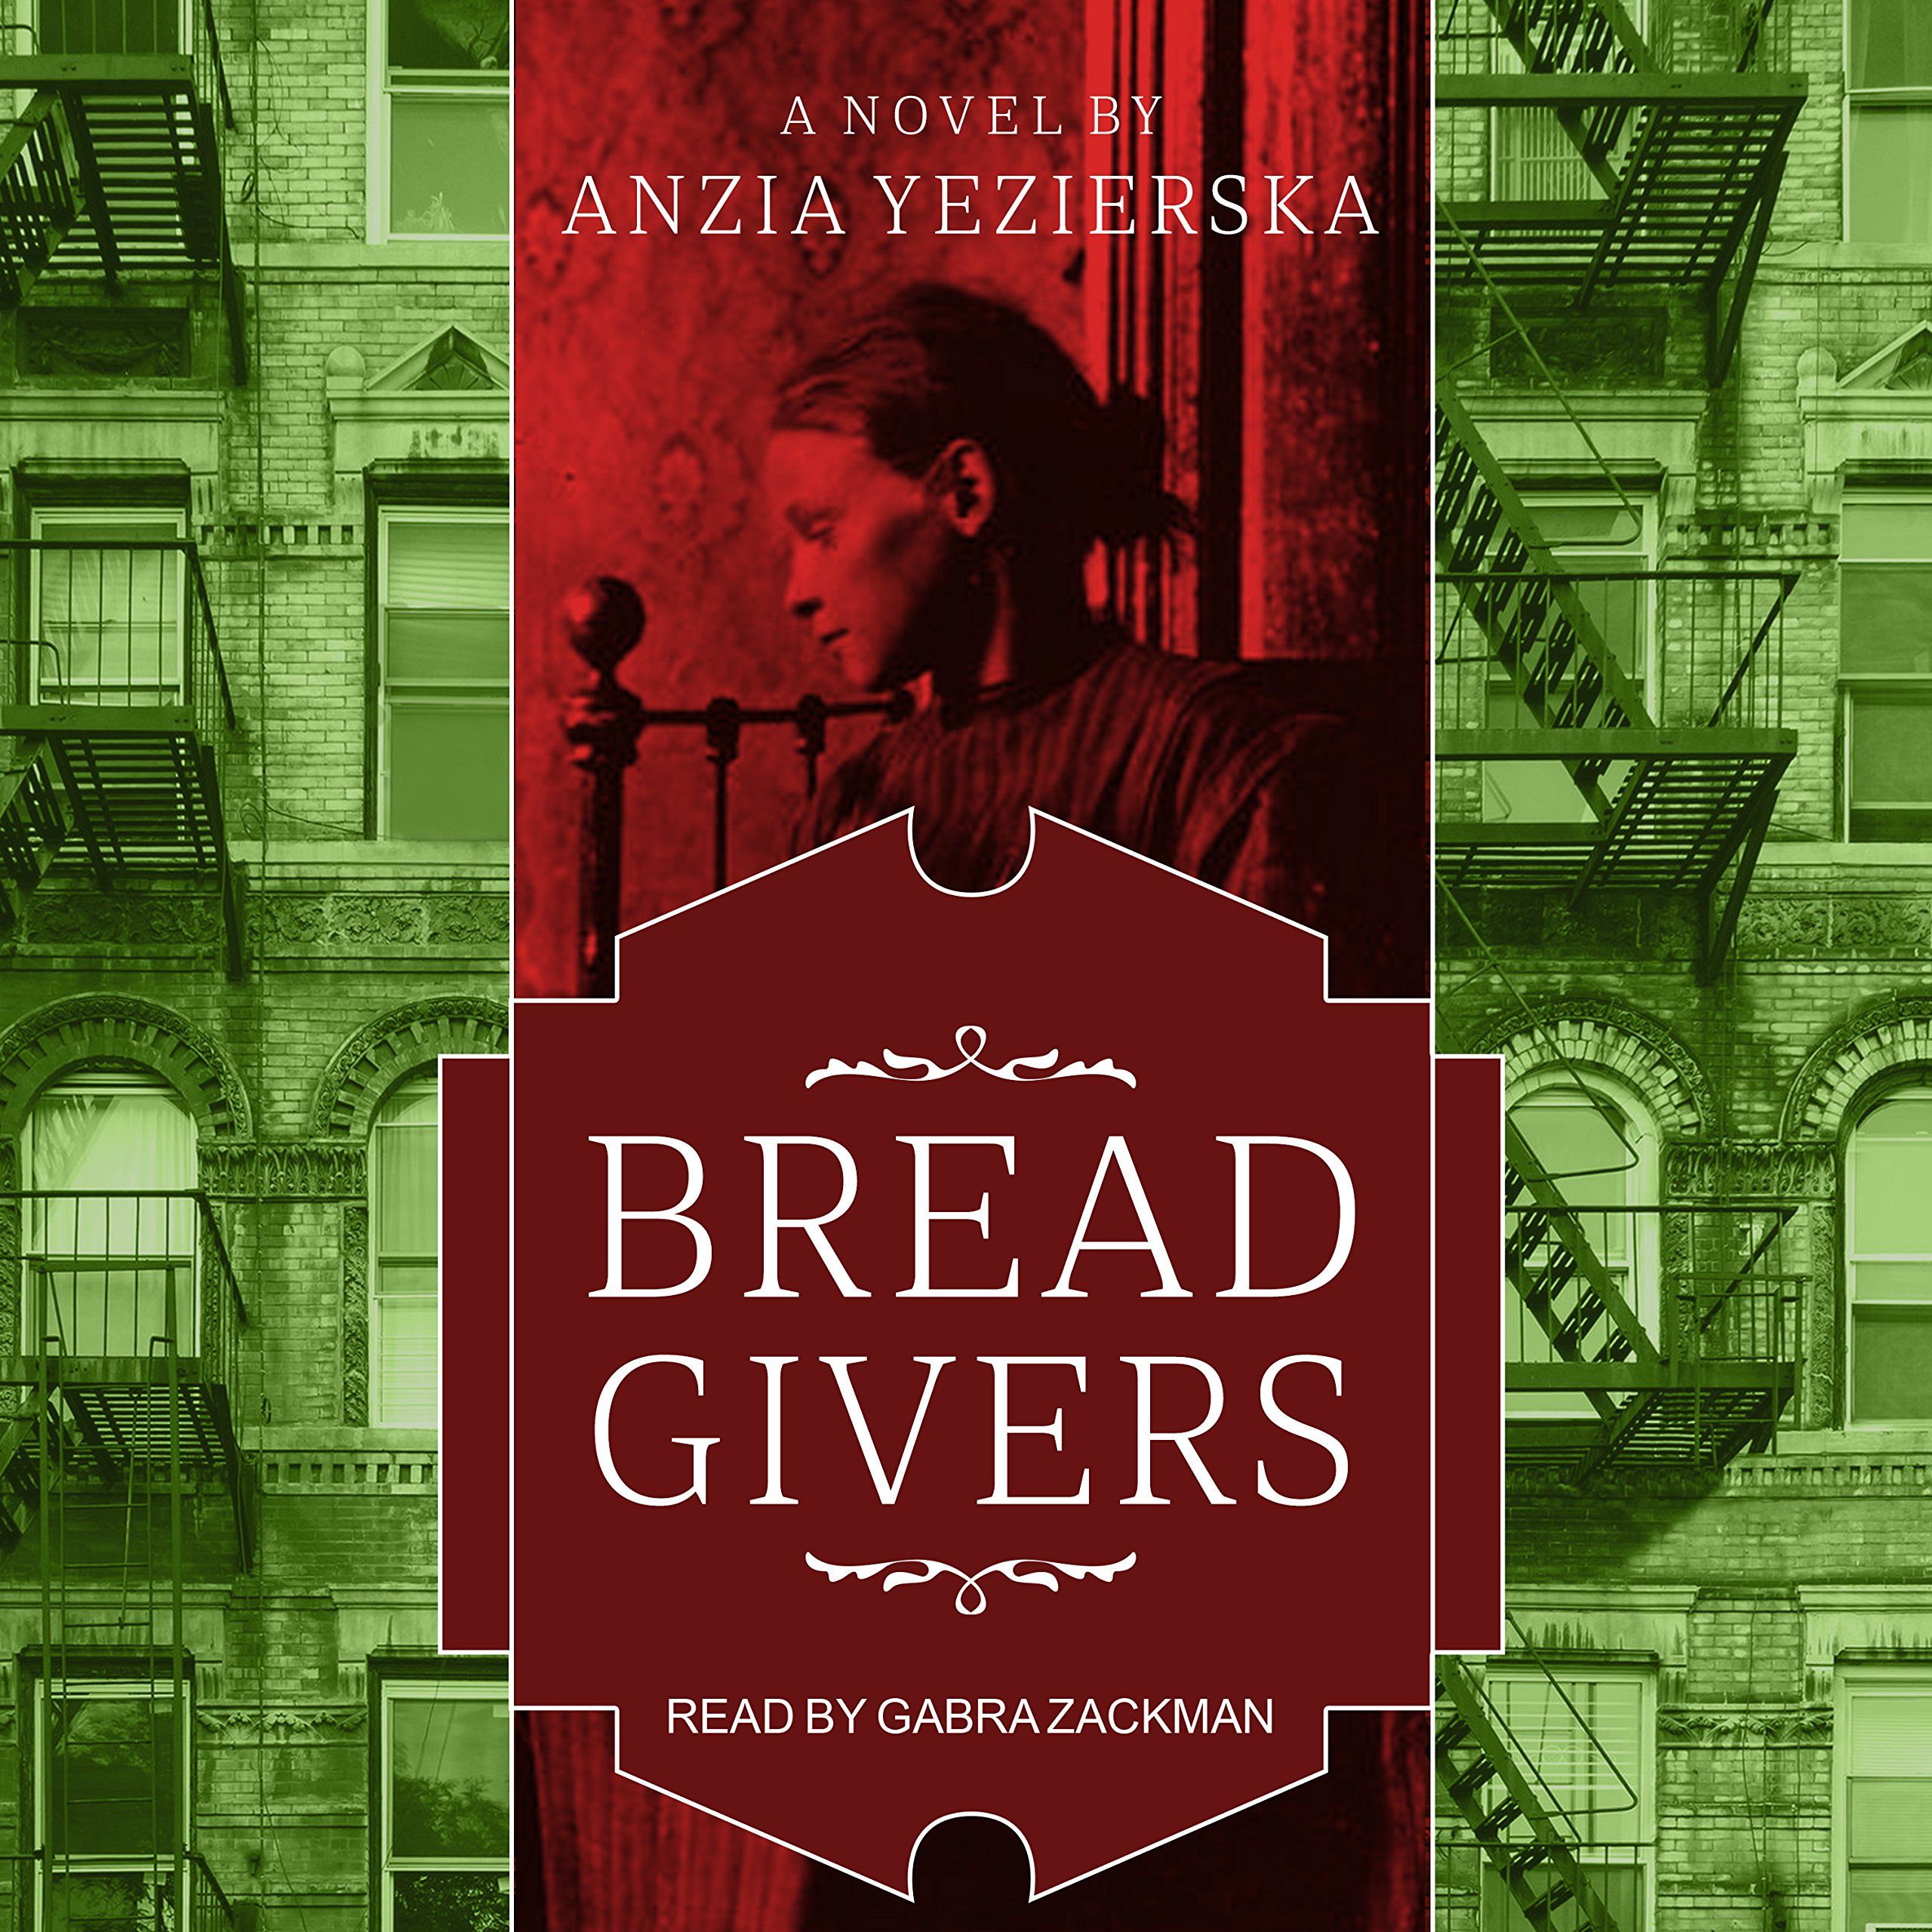 b givers a novel rd edition anzia yezierska gabra zackman  b givers a novel 3rd edition anzia yezierska gabra zackman 9781541450486 com books